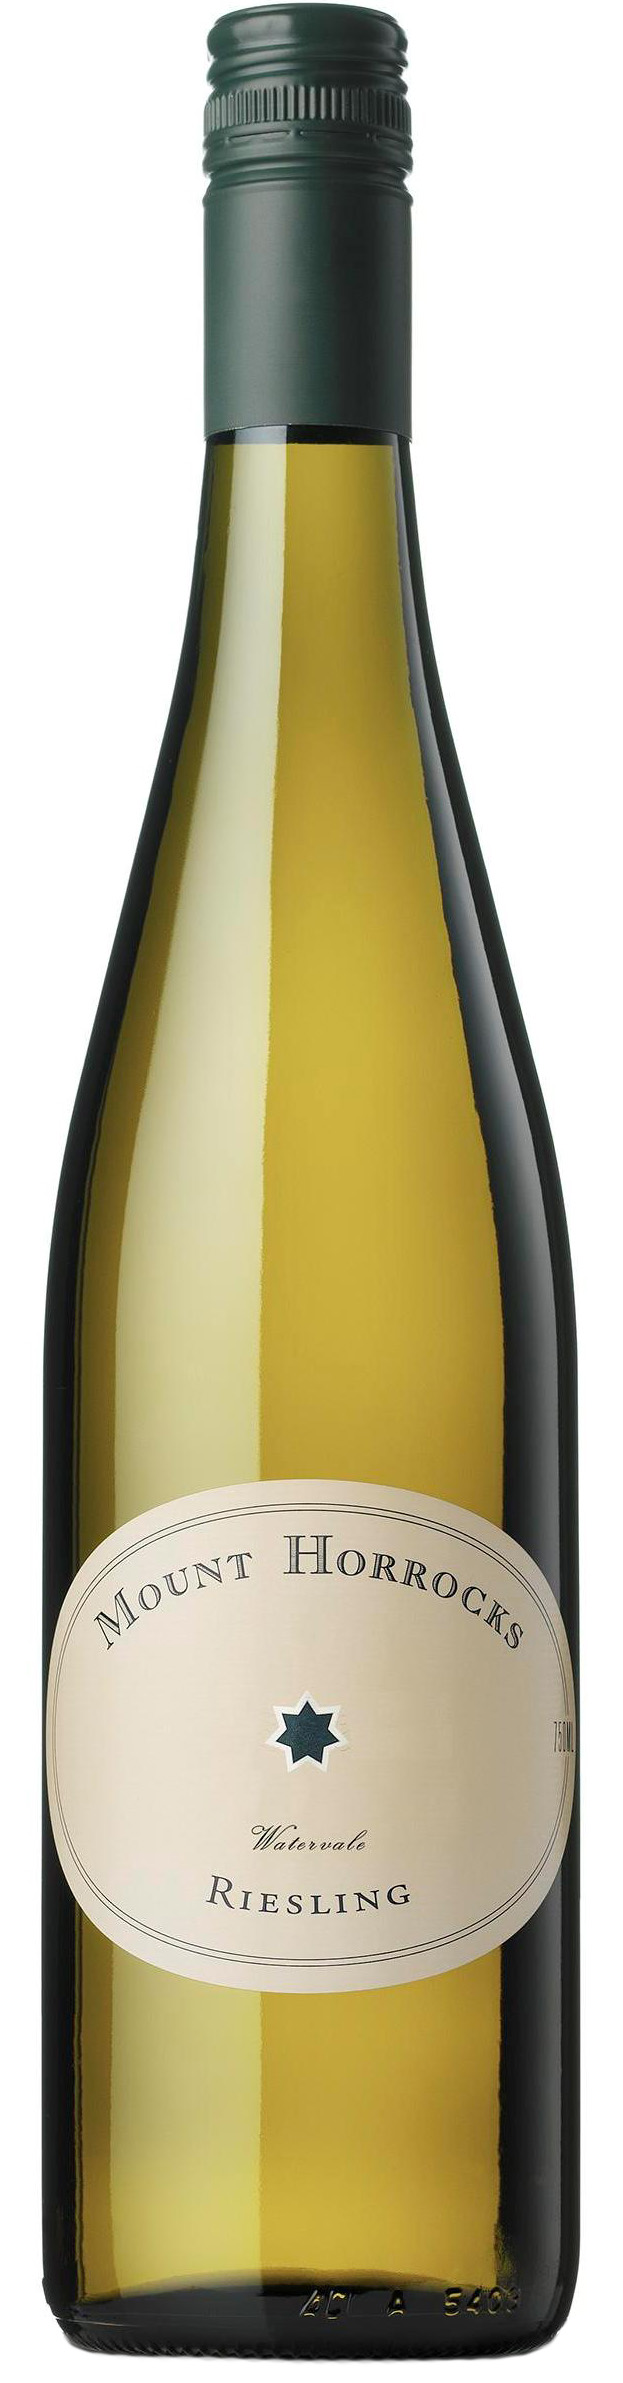 Mount Horrocks, 'Watervale' Clare Valley Riesling 2017